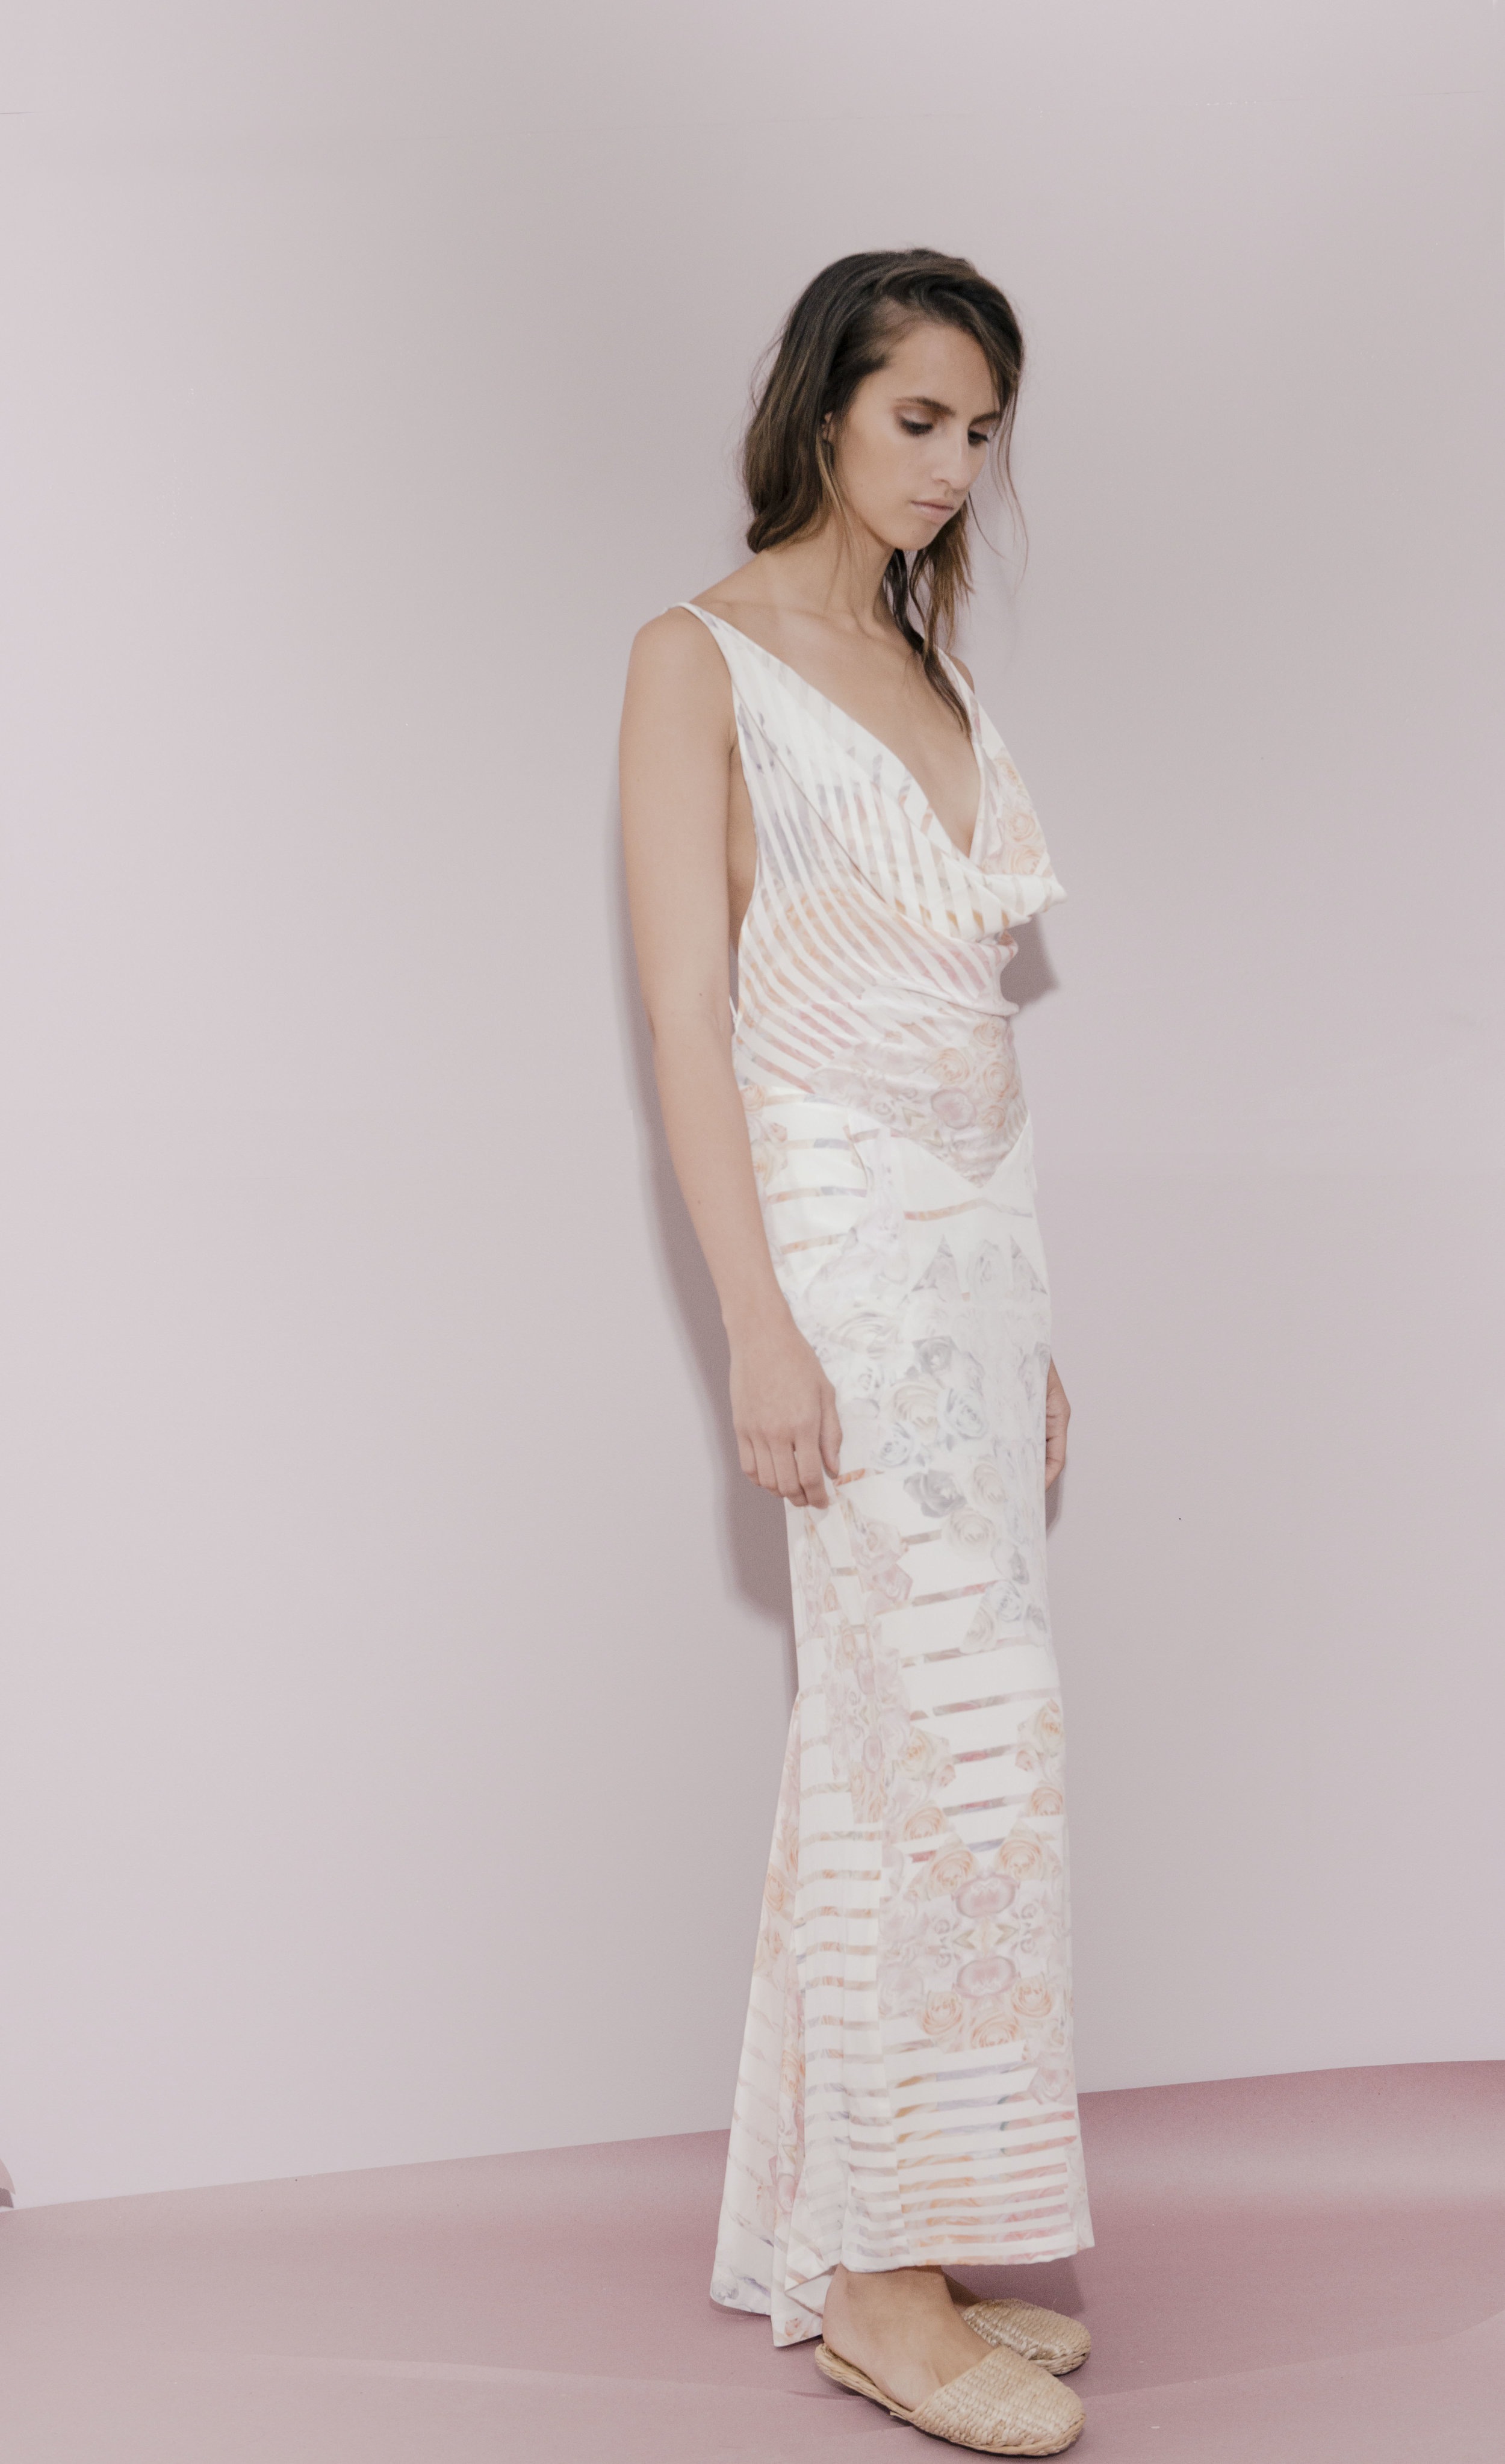 STARFLOWER GOWN  Flower printed ivory silk crepe cowl draped open back gown. Price upon request.